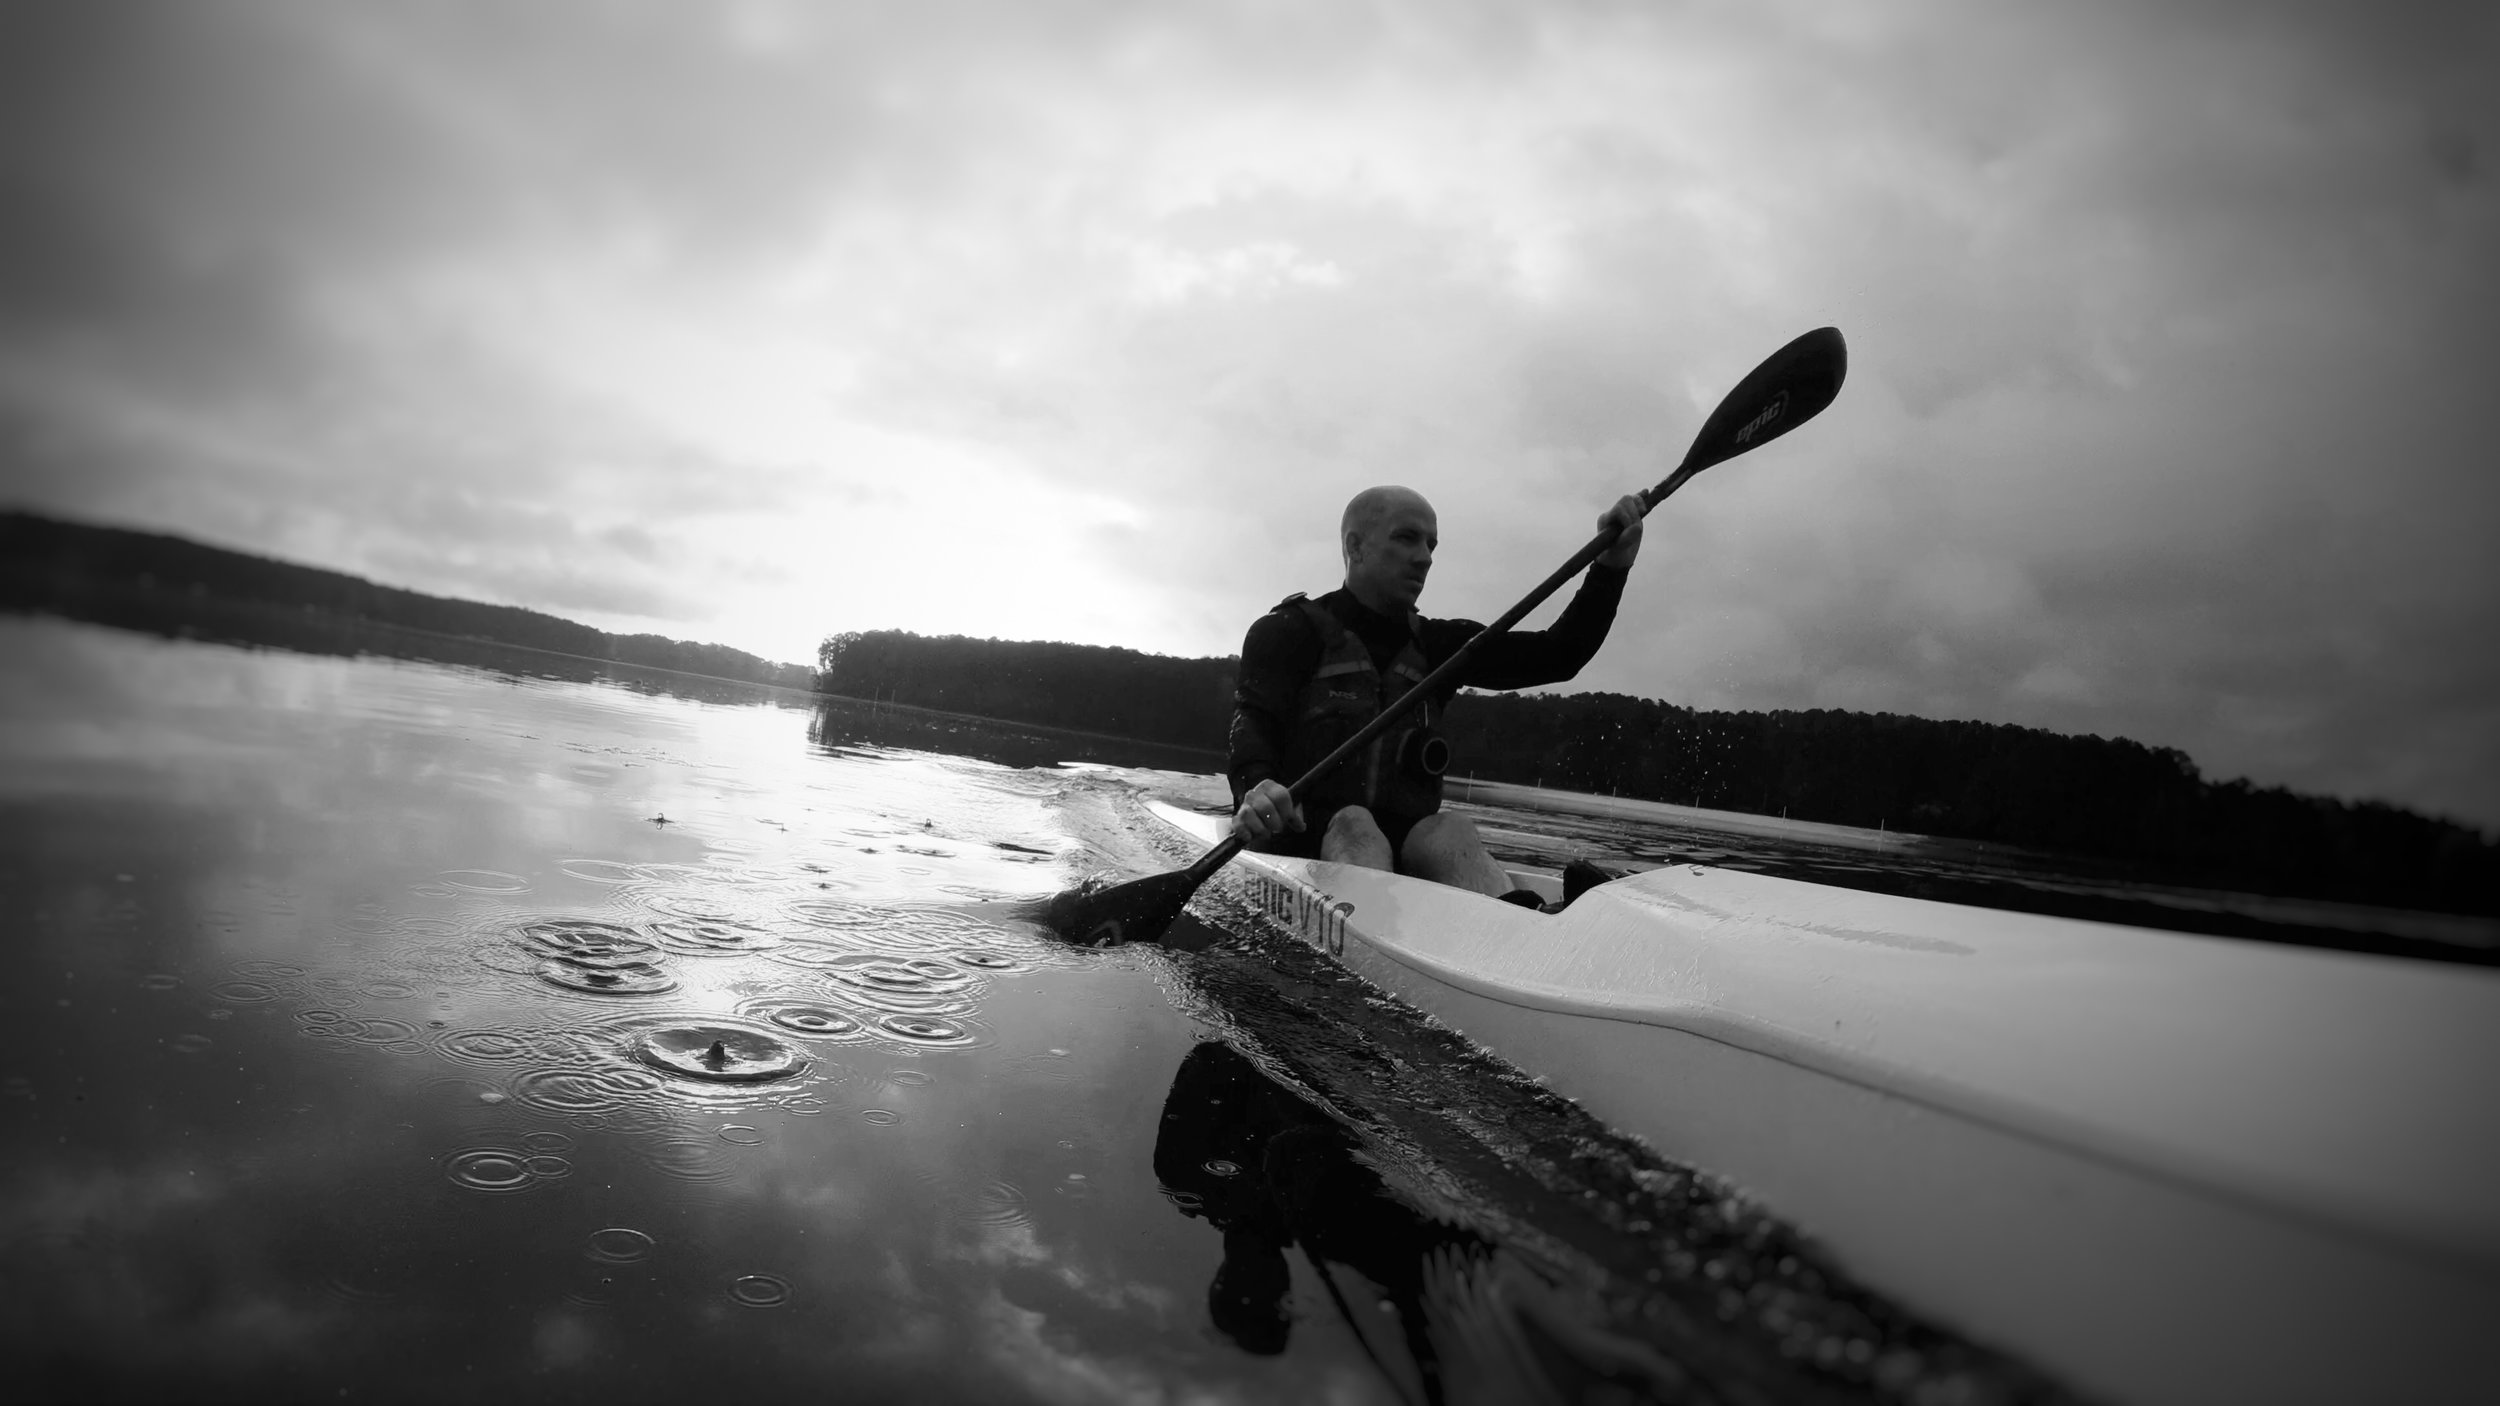 FORESTER SETS OUT FOR UNUSUAL CLAIM TO FAME ON LAKE LANIER